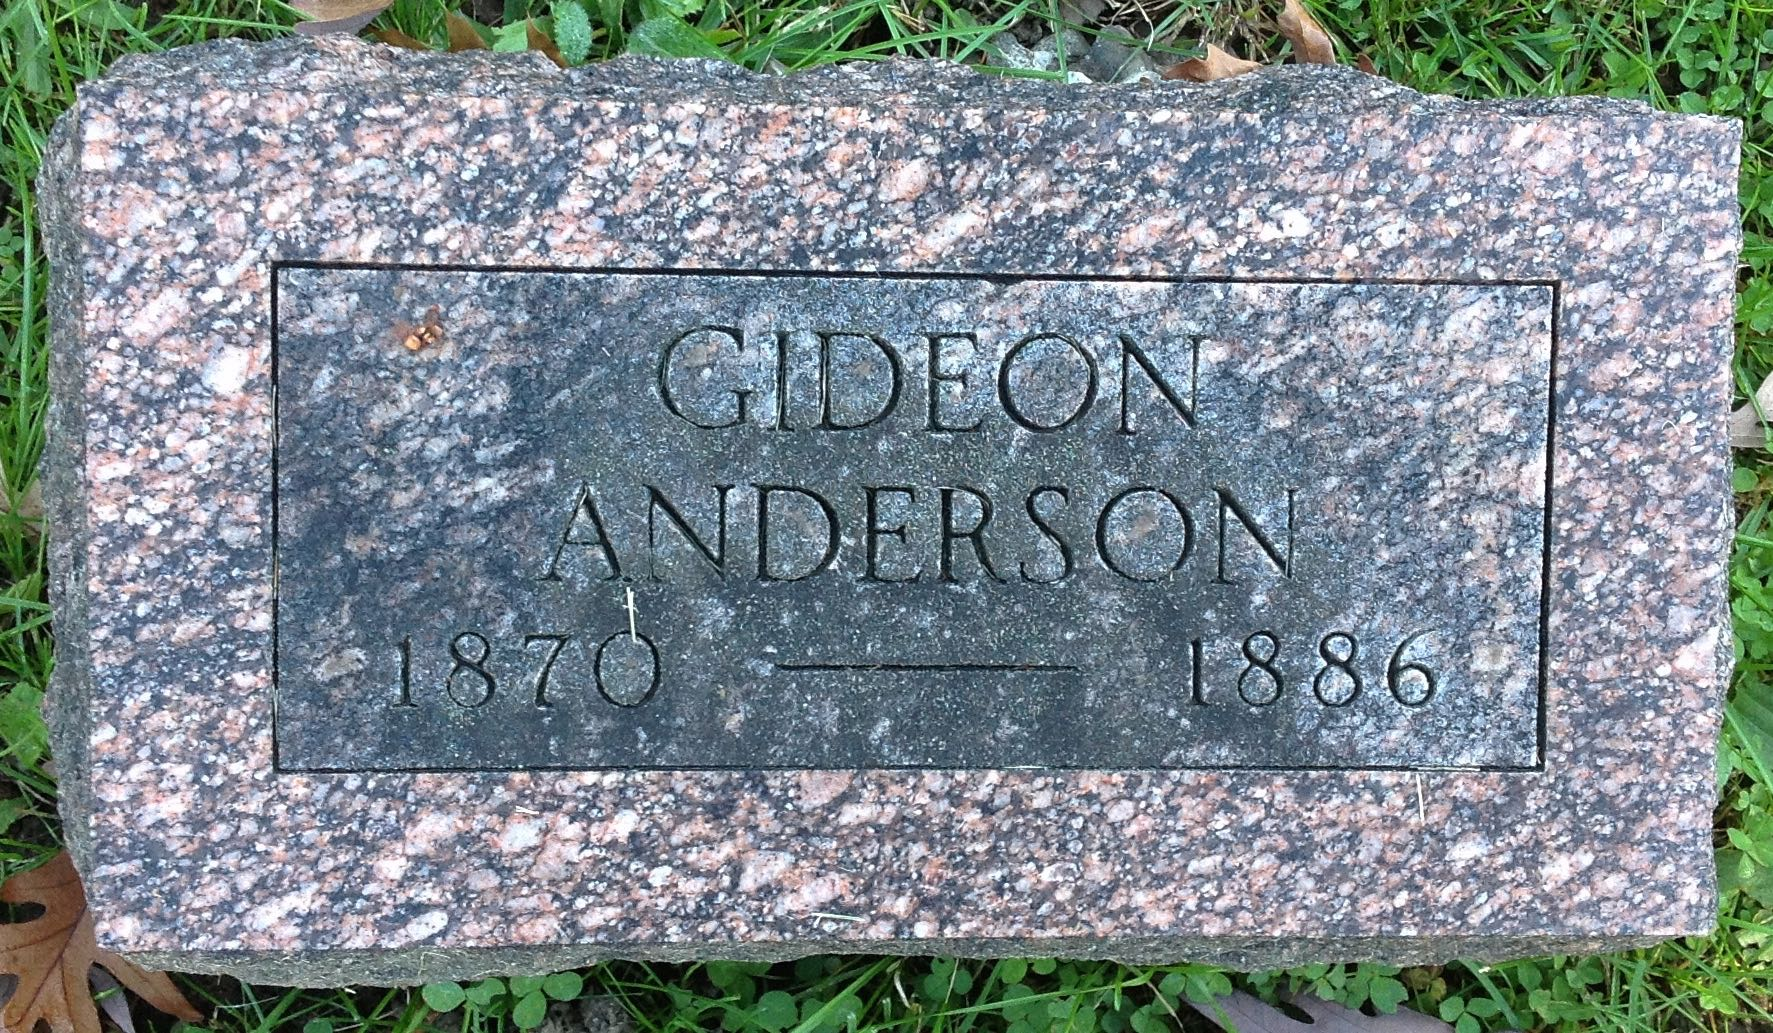 Gideon Anderson